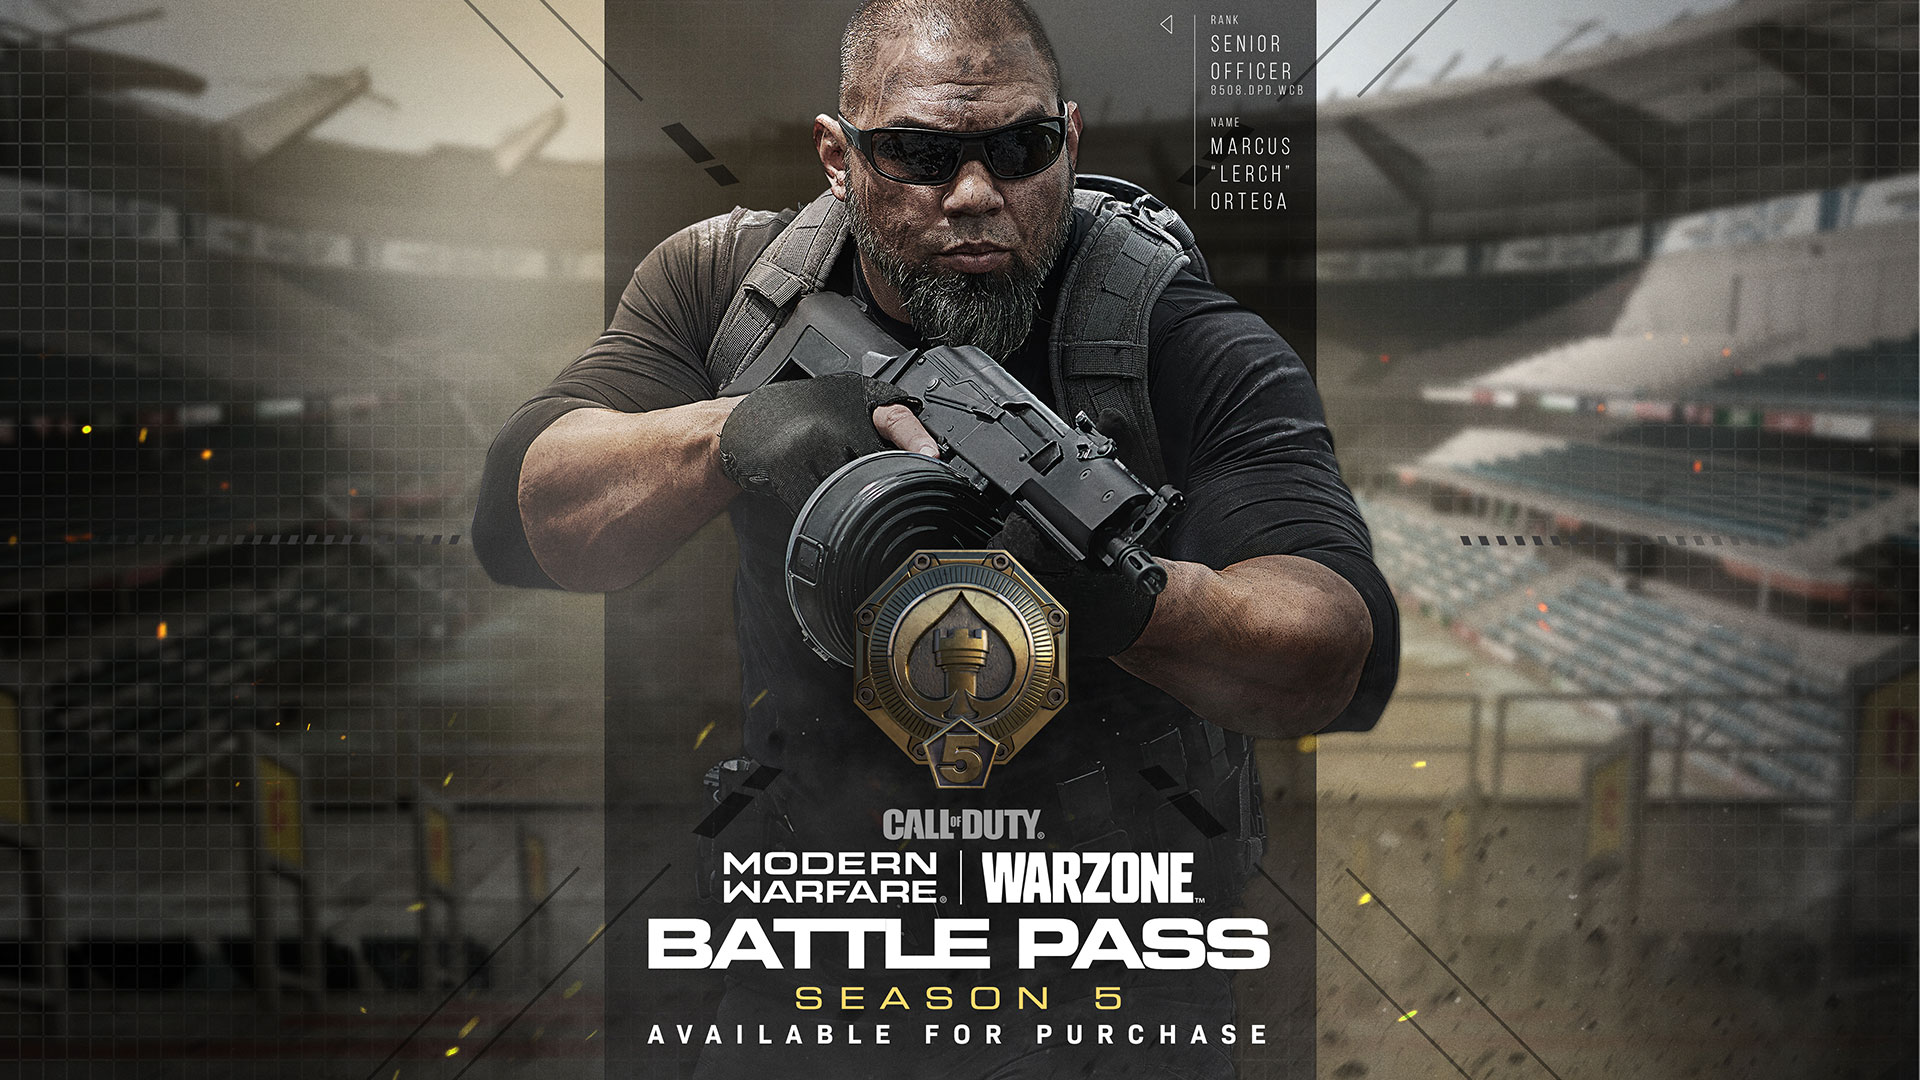 New Battle Pass System Content